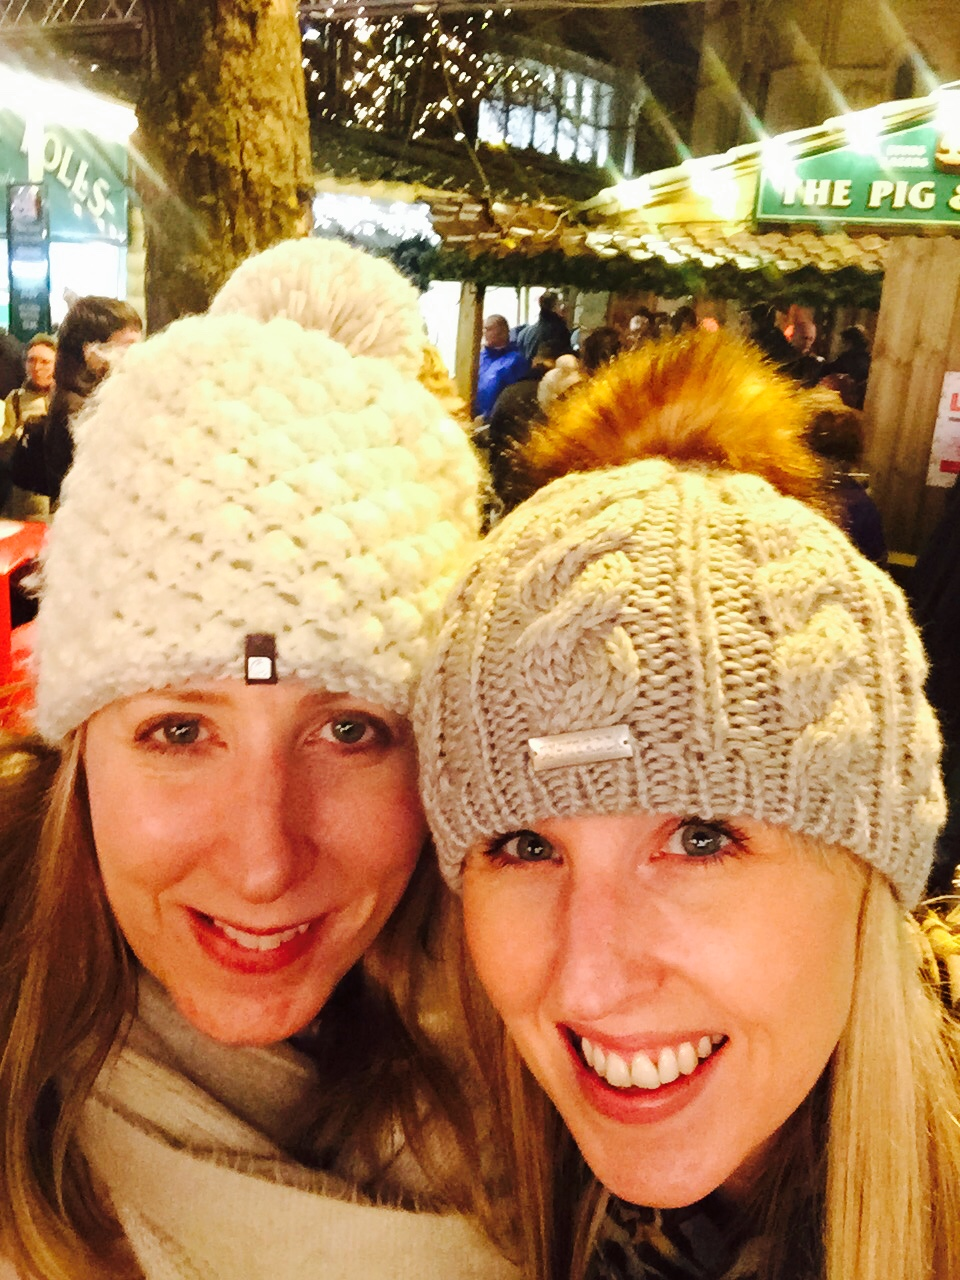 Have bobbles, will travel. My friend Mel (right) and I get wrapped up for the Manchester Christmas experience. Pic by @jabberingjounro